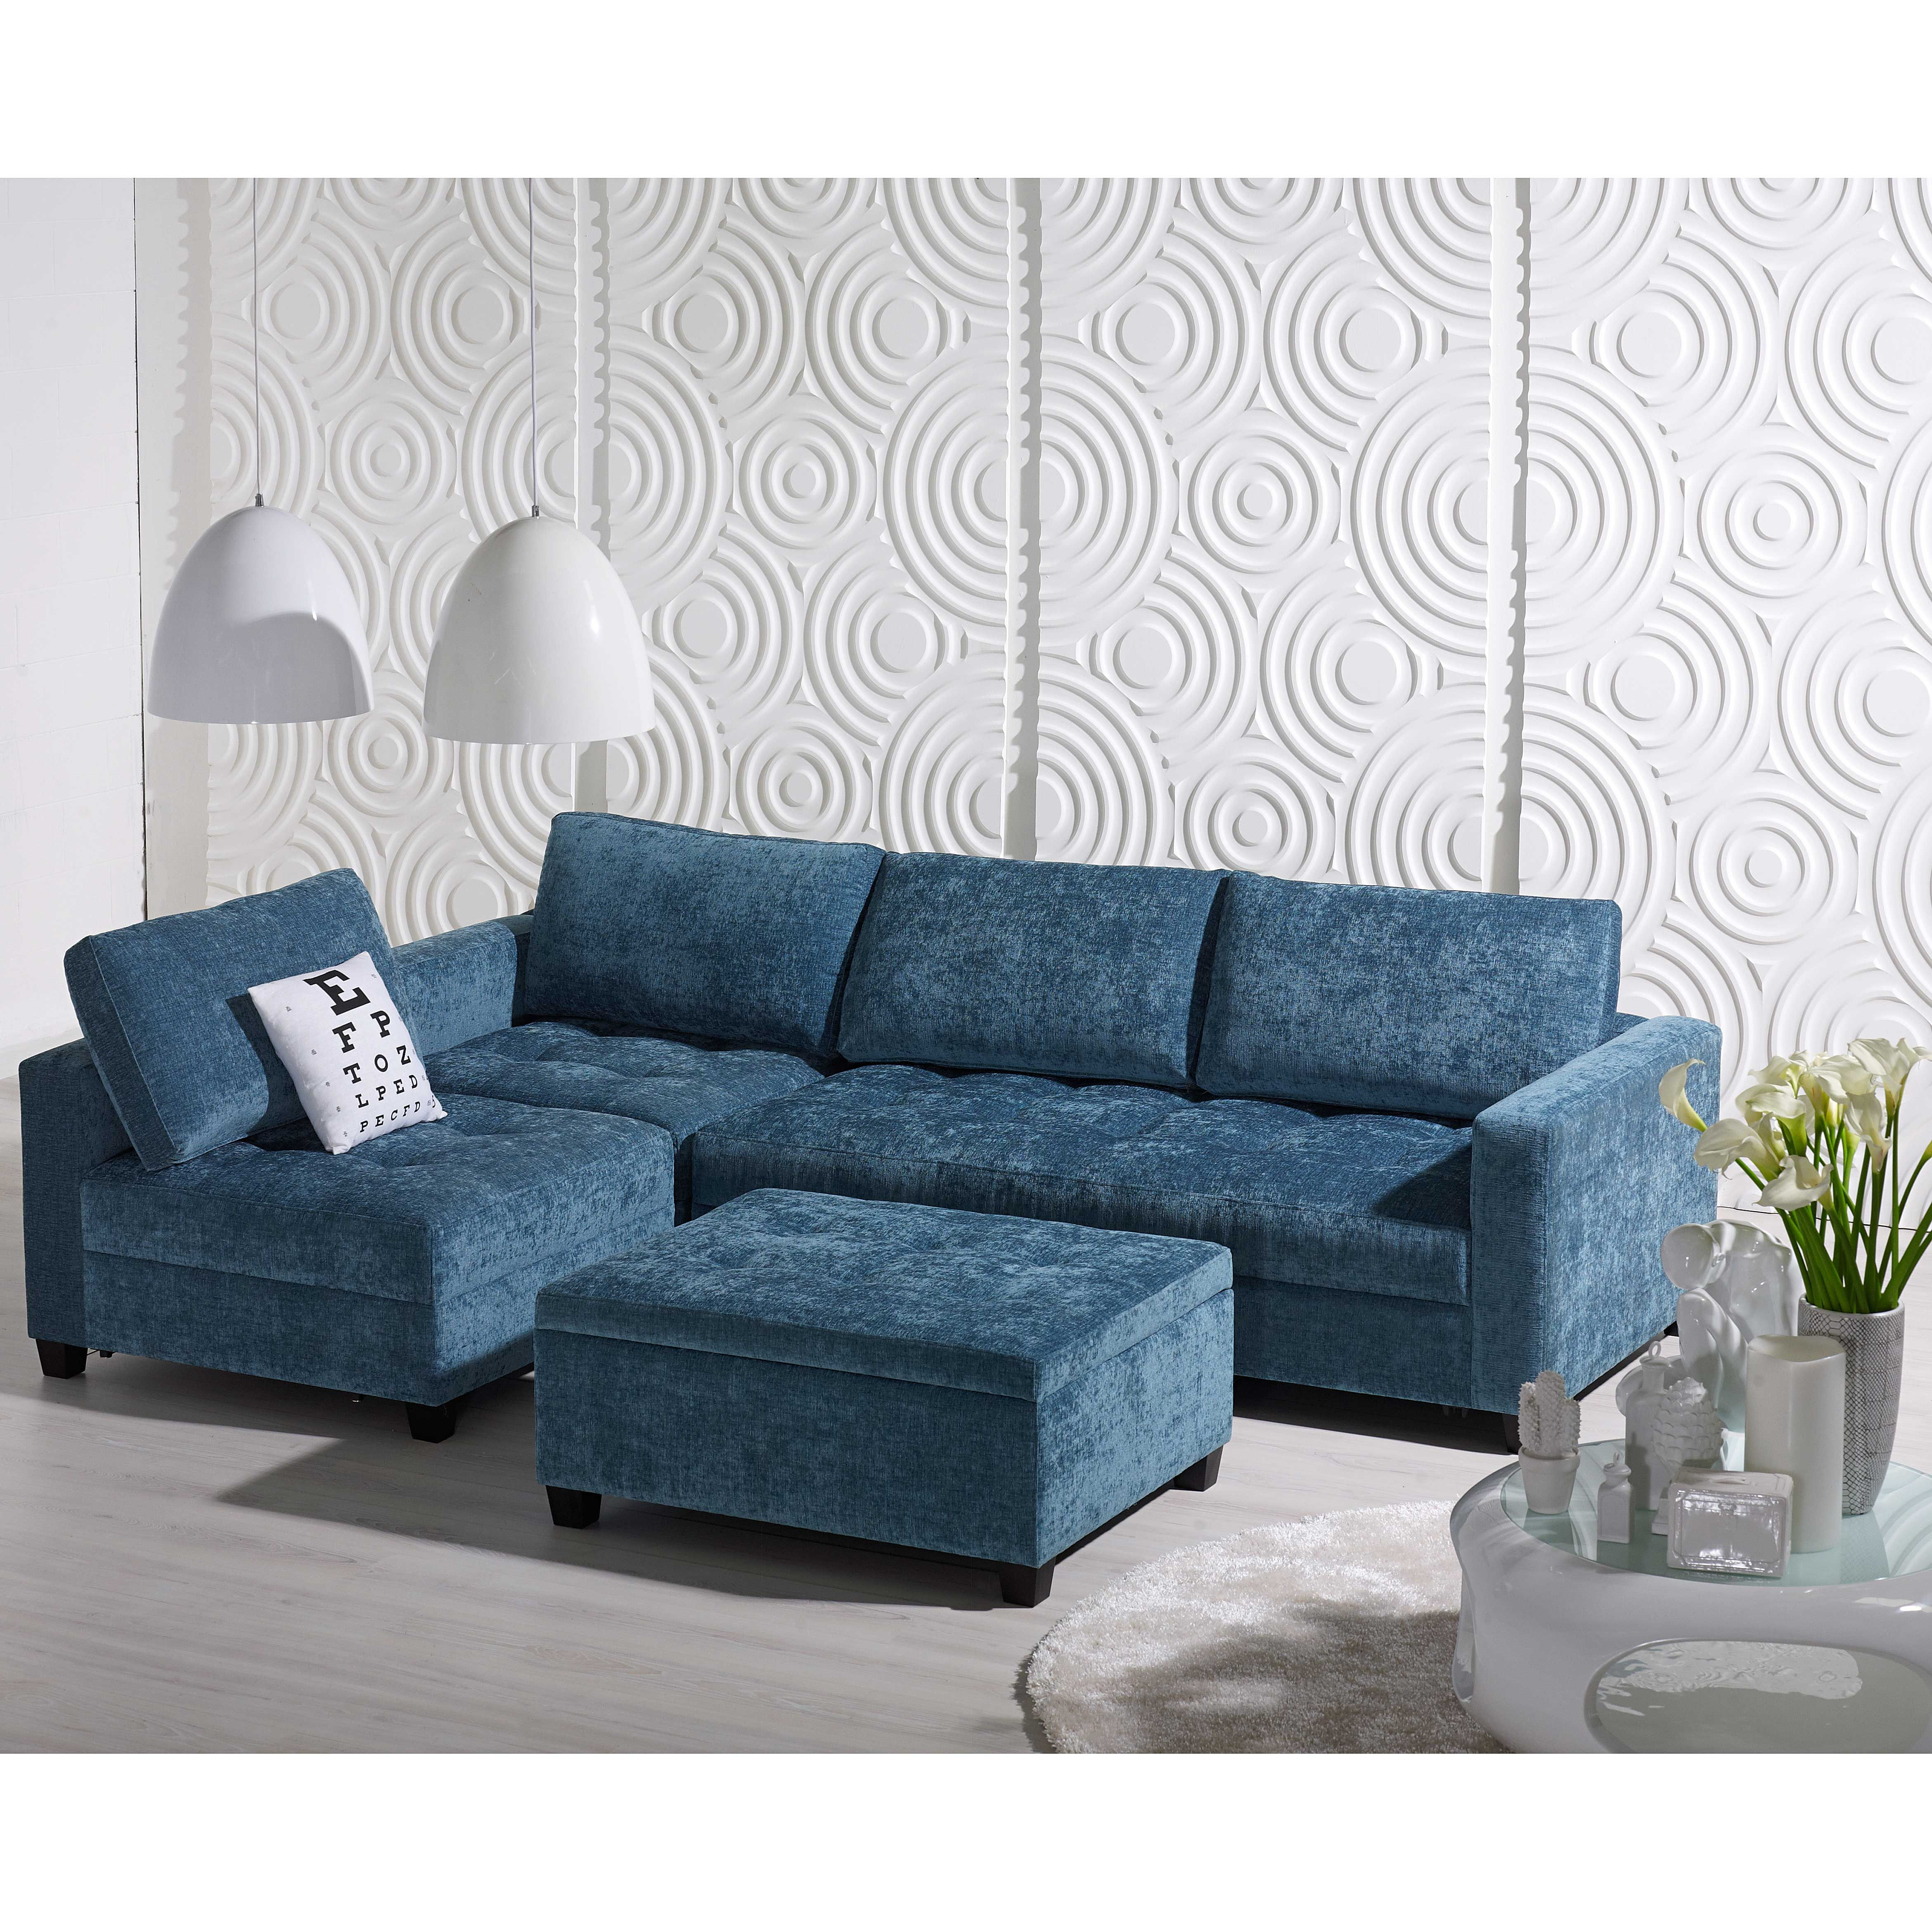 Sophia Fabric Modular Lounge With Ottoman From Domayne. If